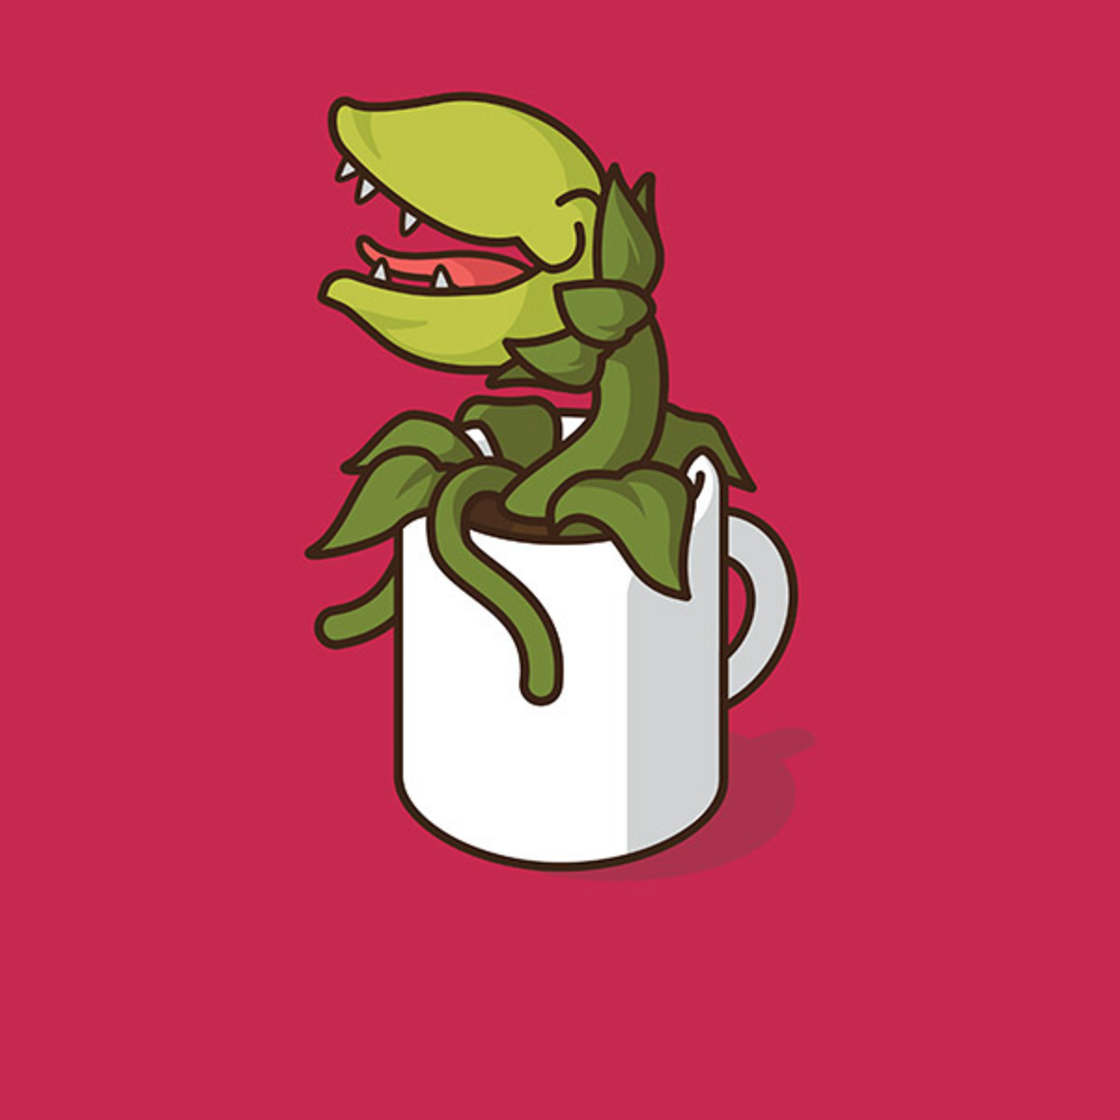 Pop Culture Coffee - Les personnages de la pop culture version tasses a cafe